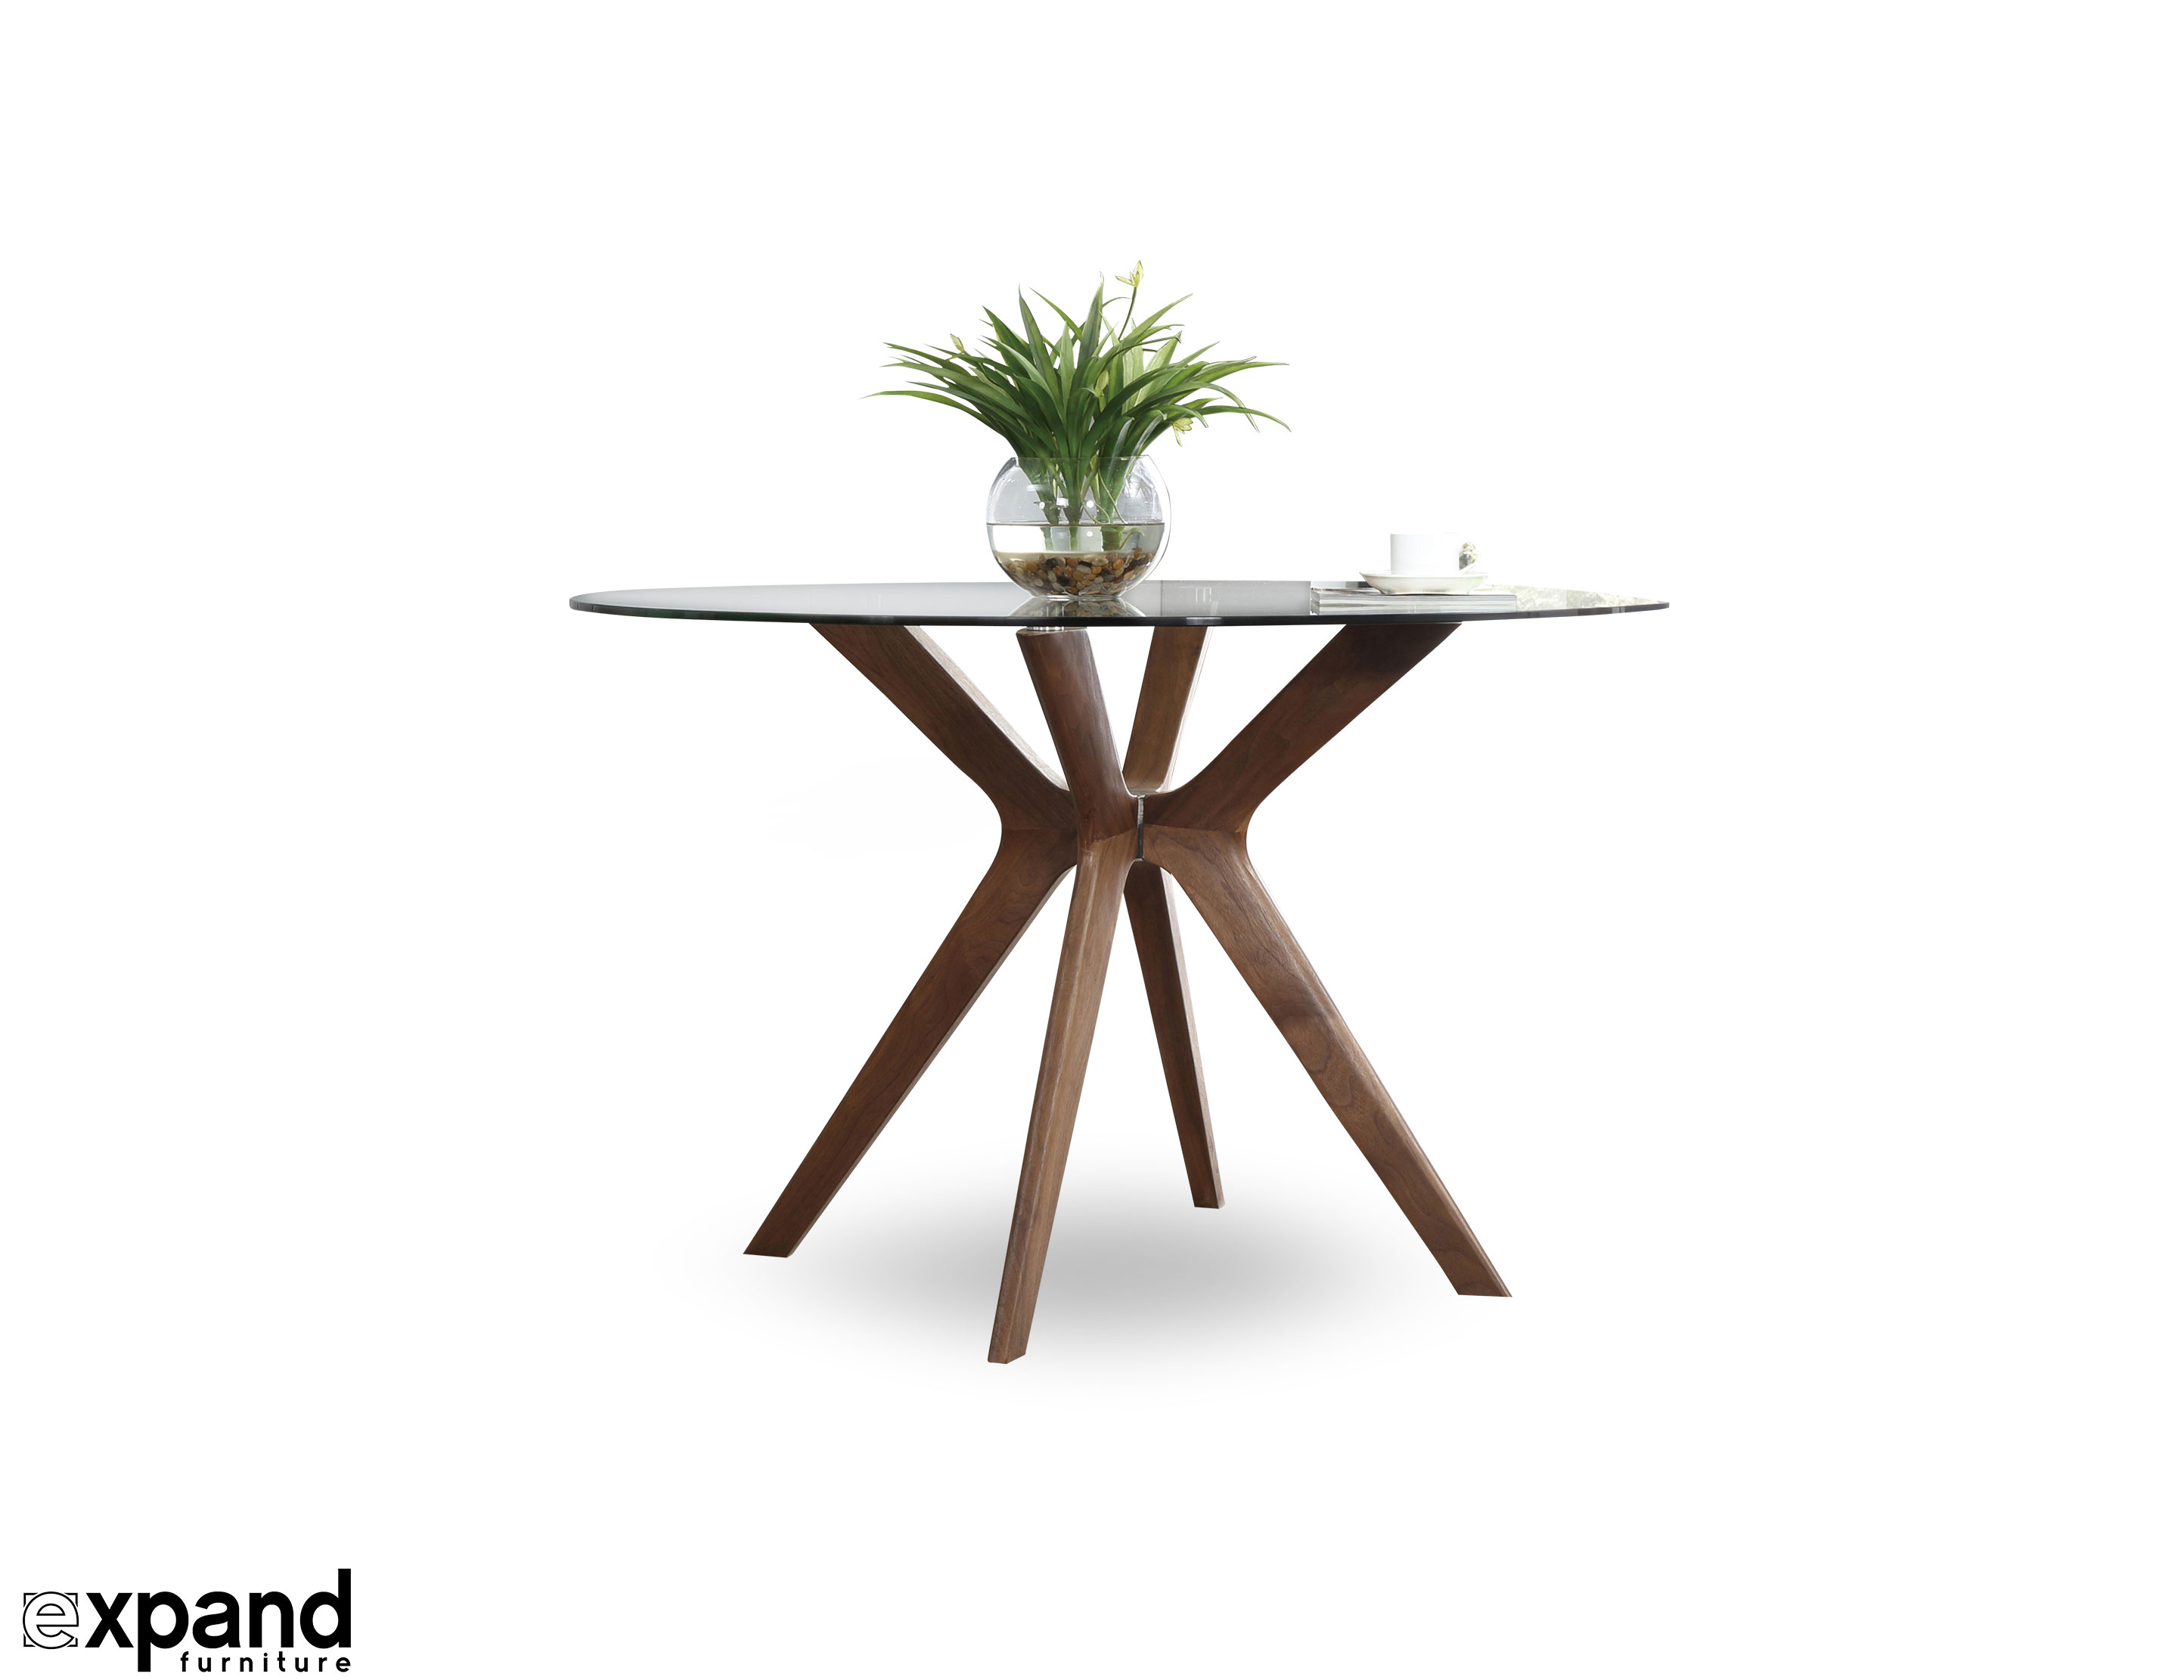 The Branch - Round Clear Glass Table with Wood Legs